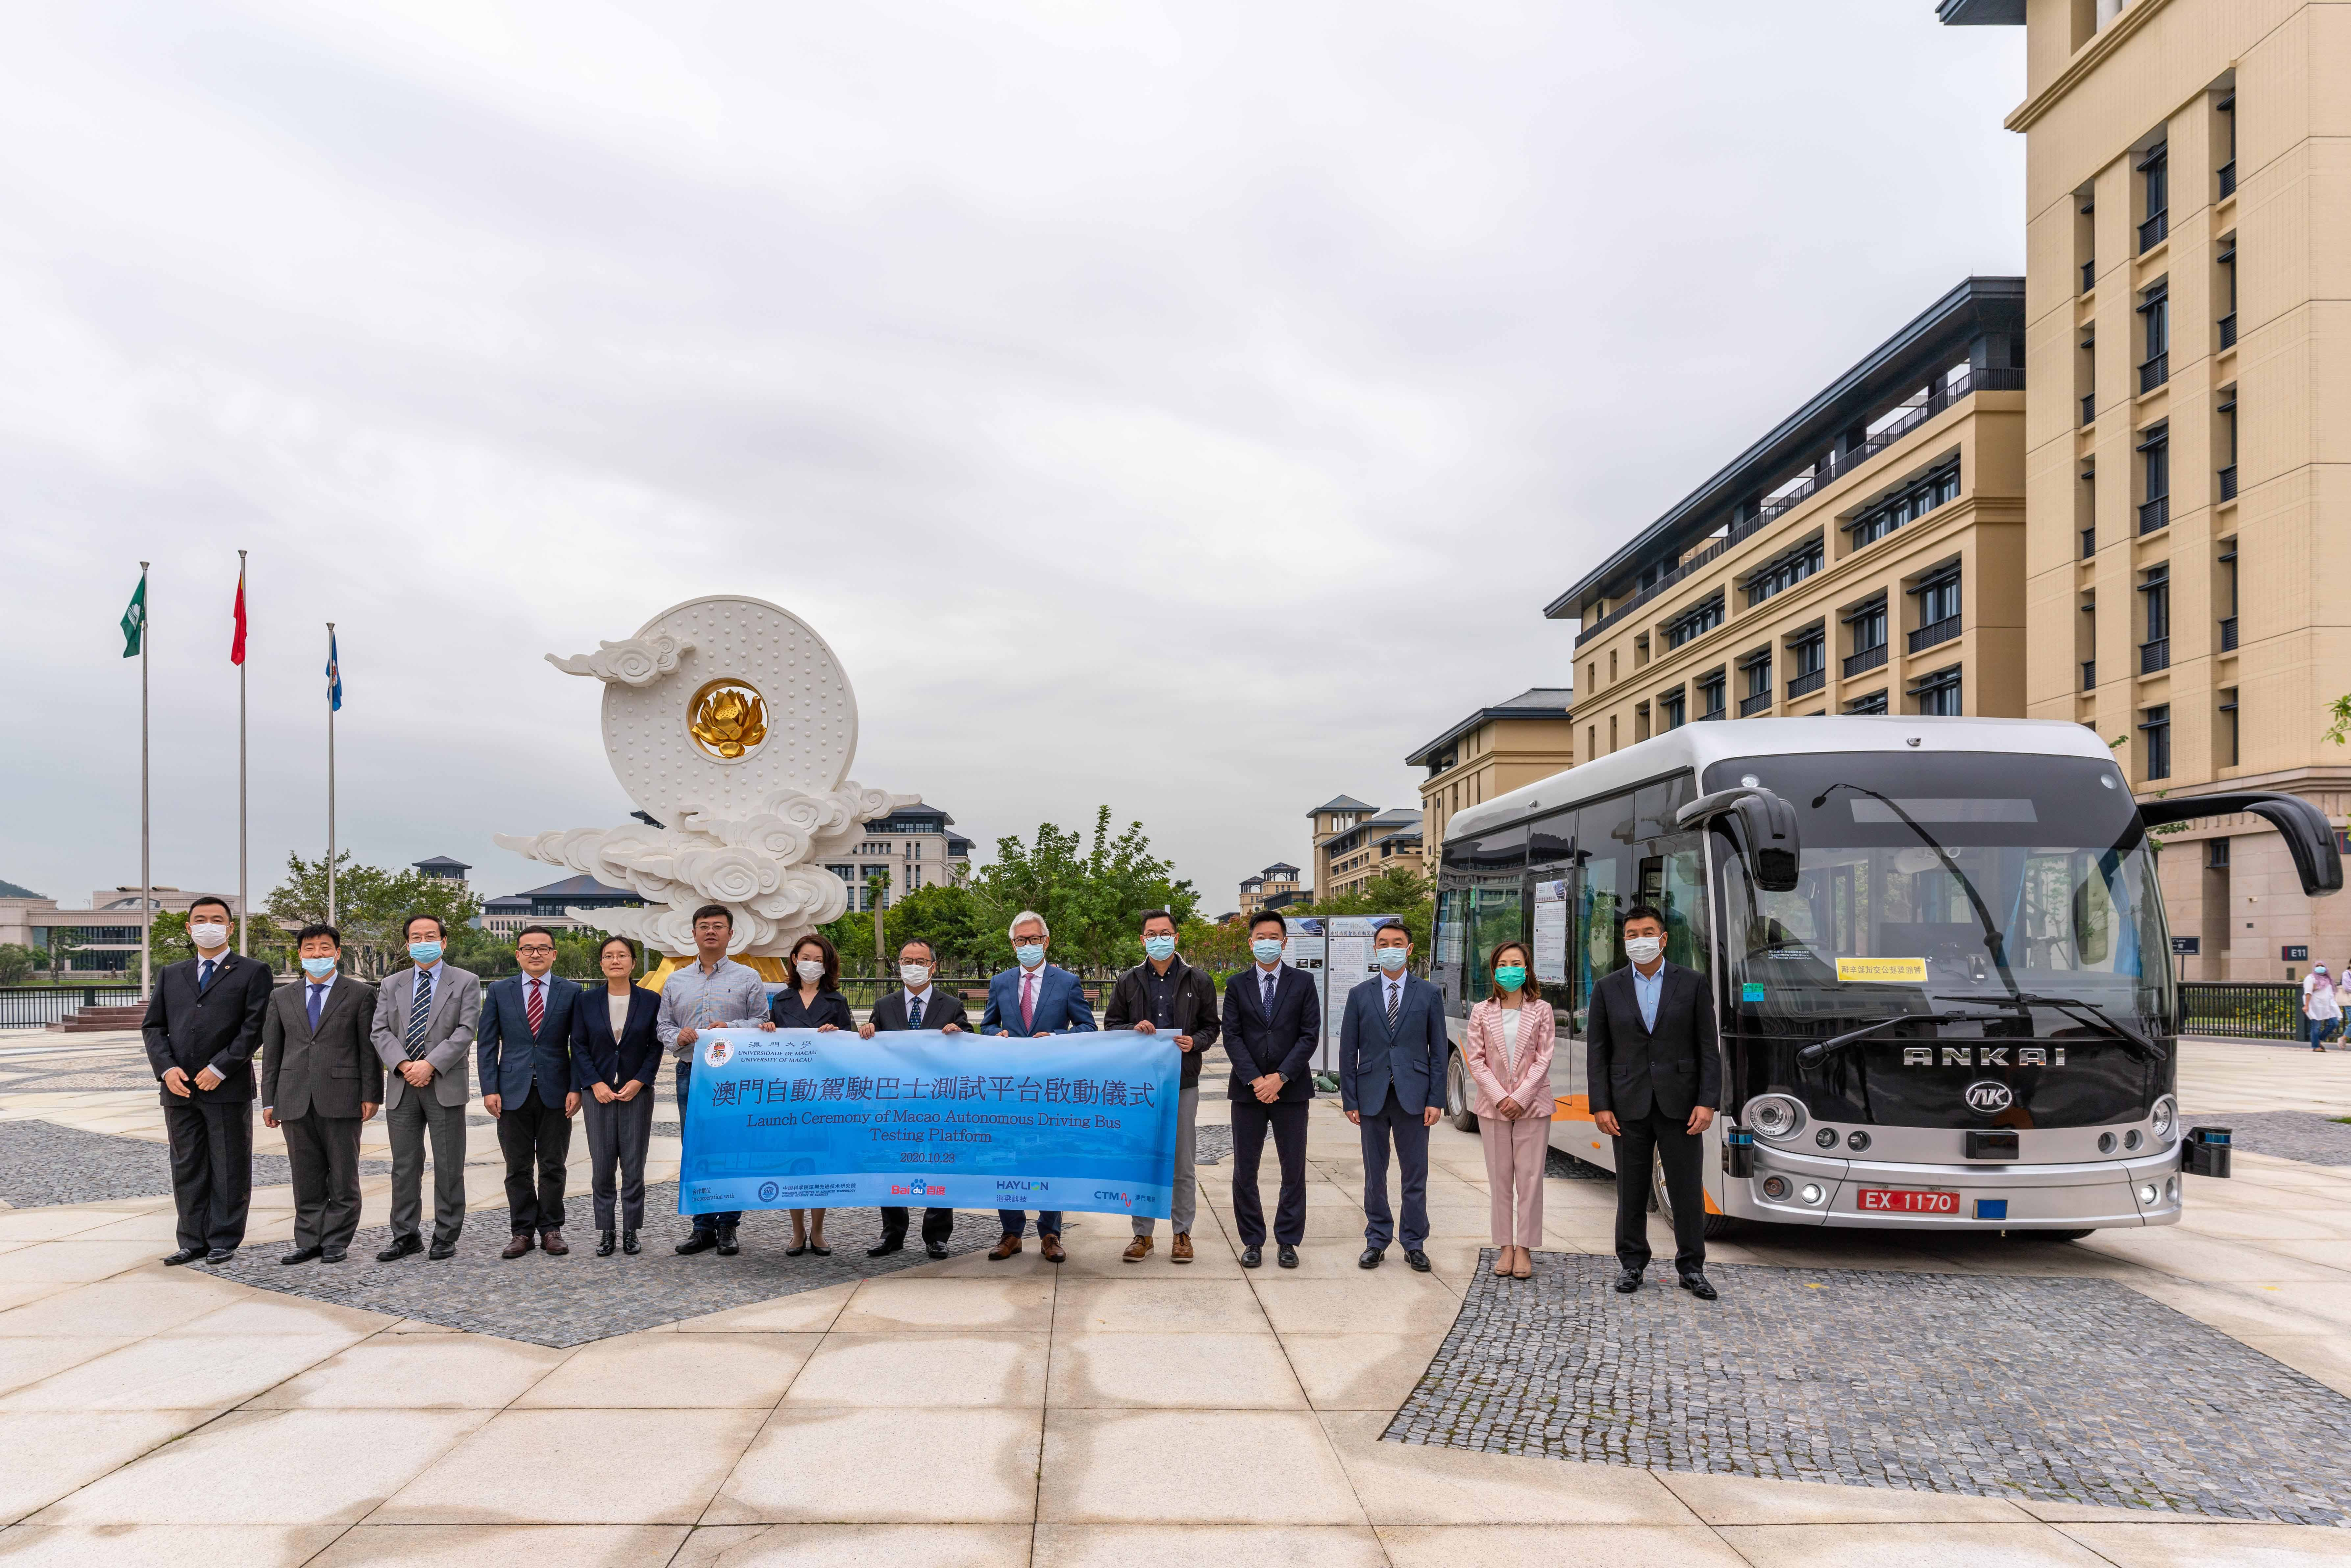 Macao's first Autonomous Driving Bus Testing Platform has been launched at UM